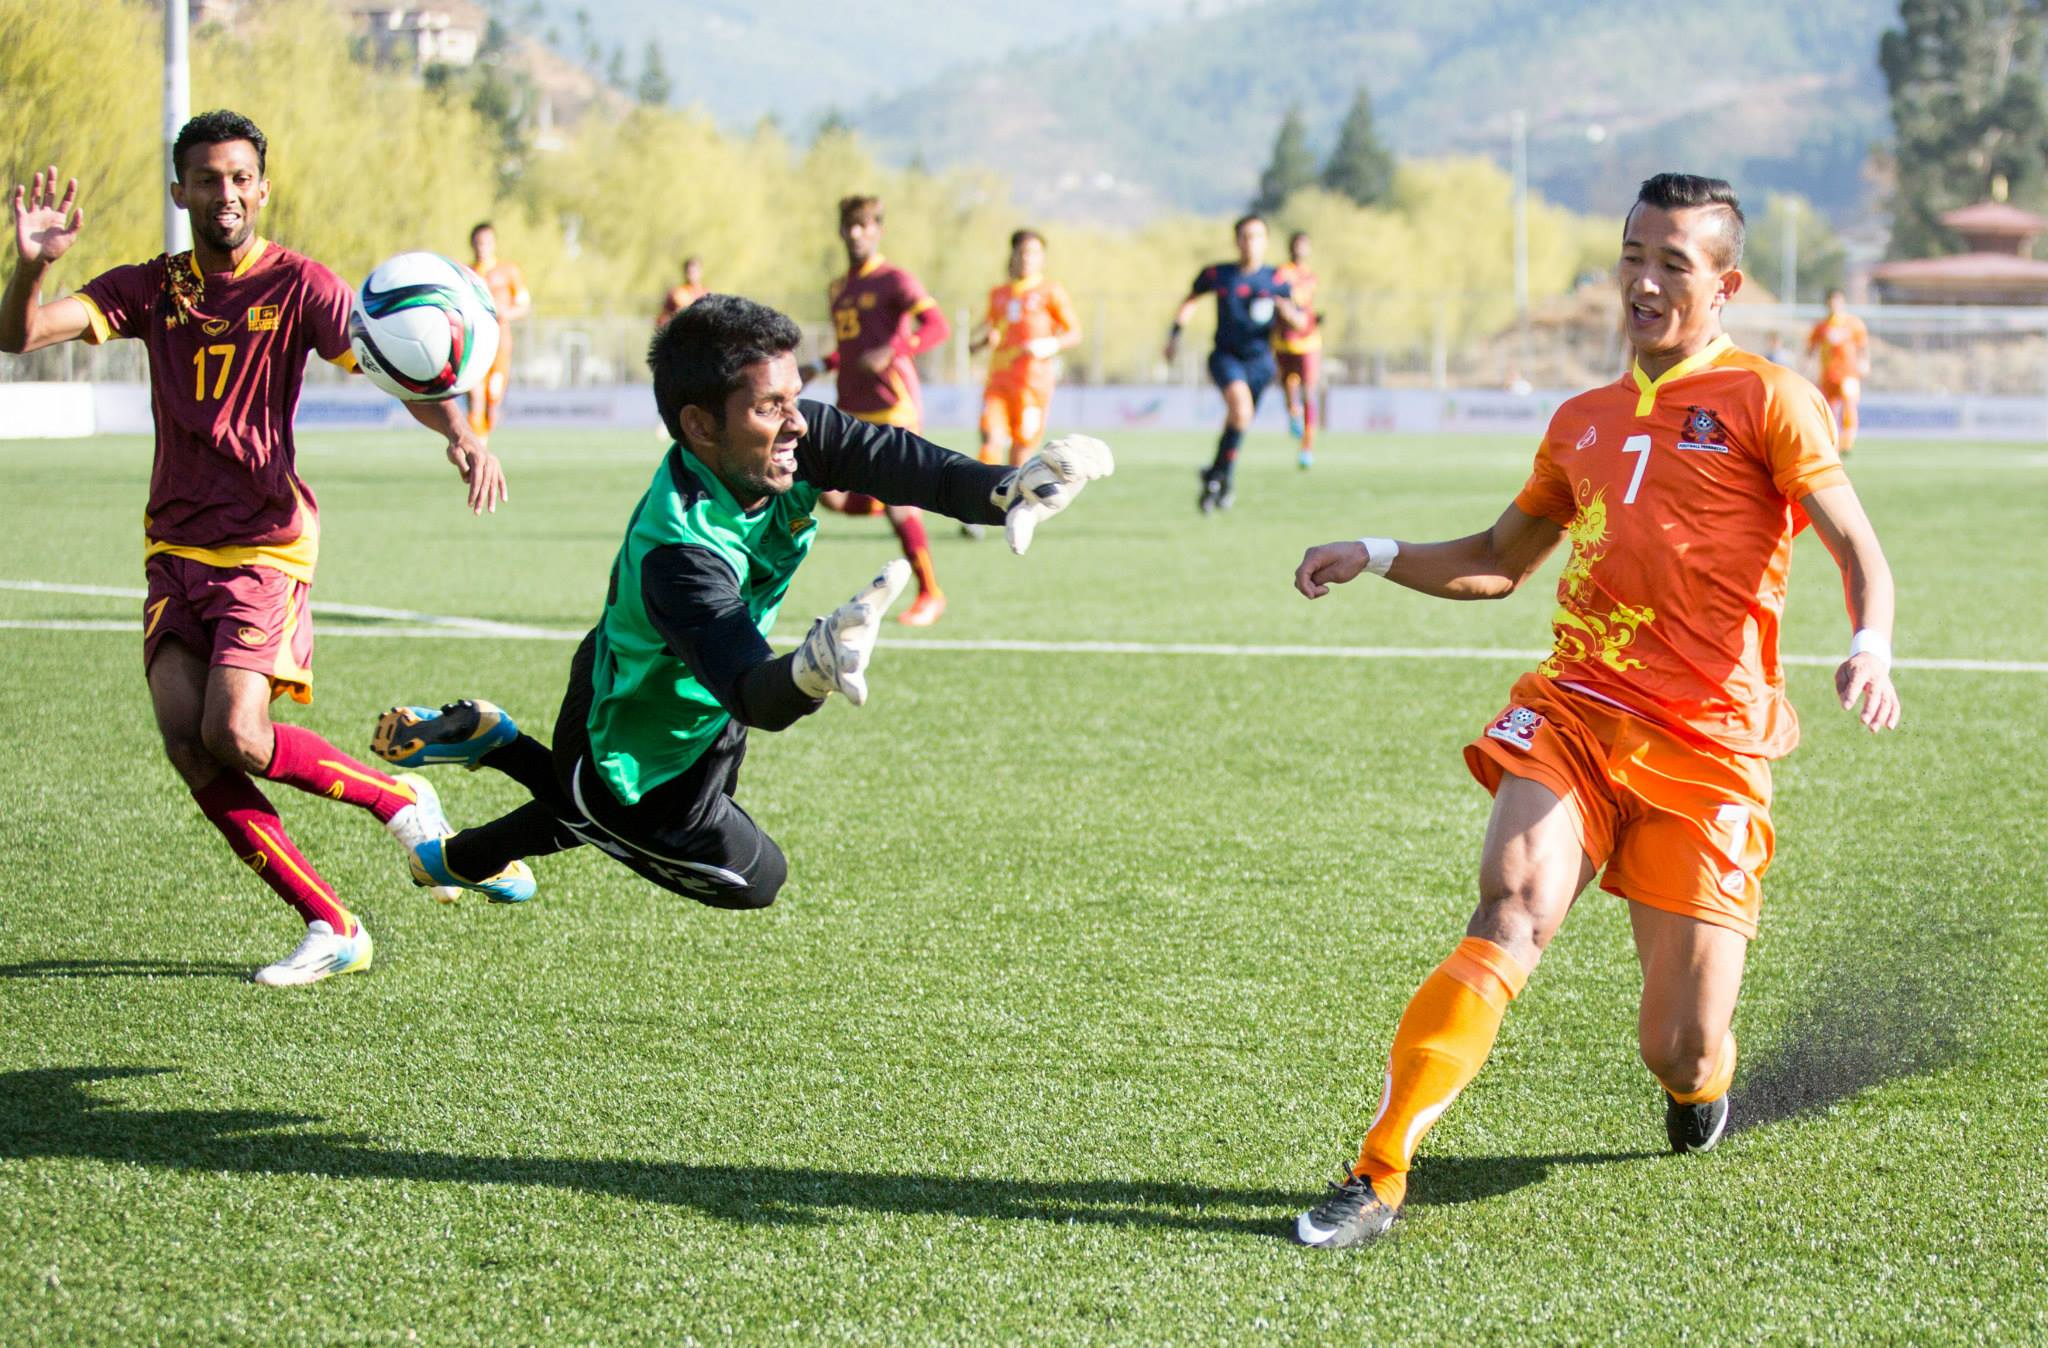 Chencho Gyaltshen scoring the first World Cup goal in Bhutan's history.